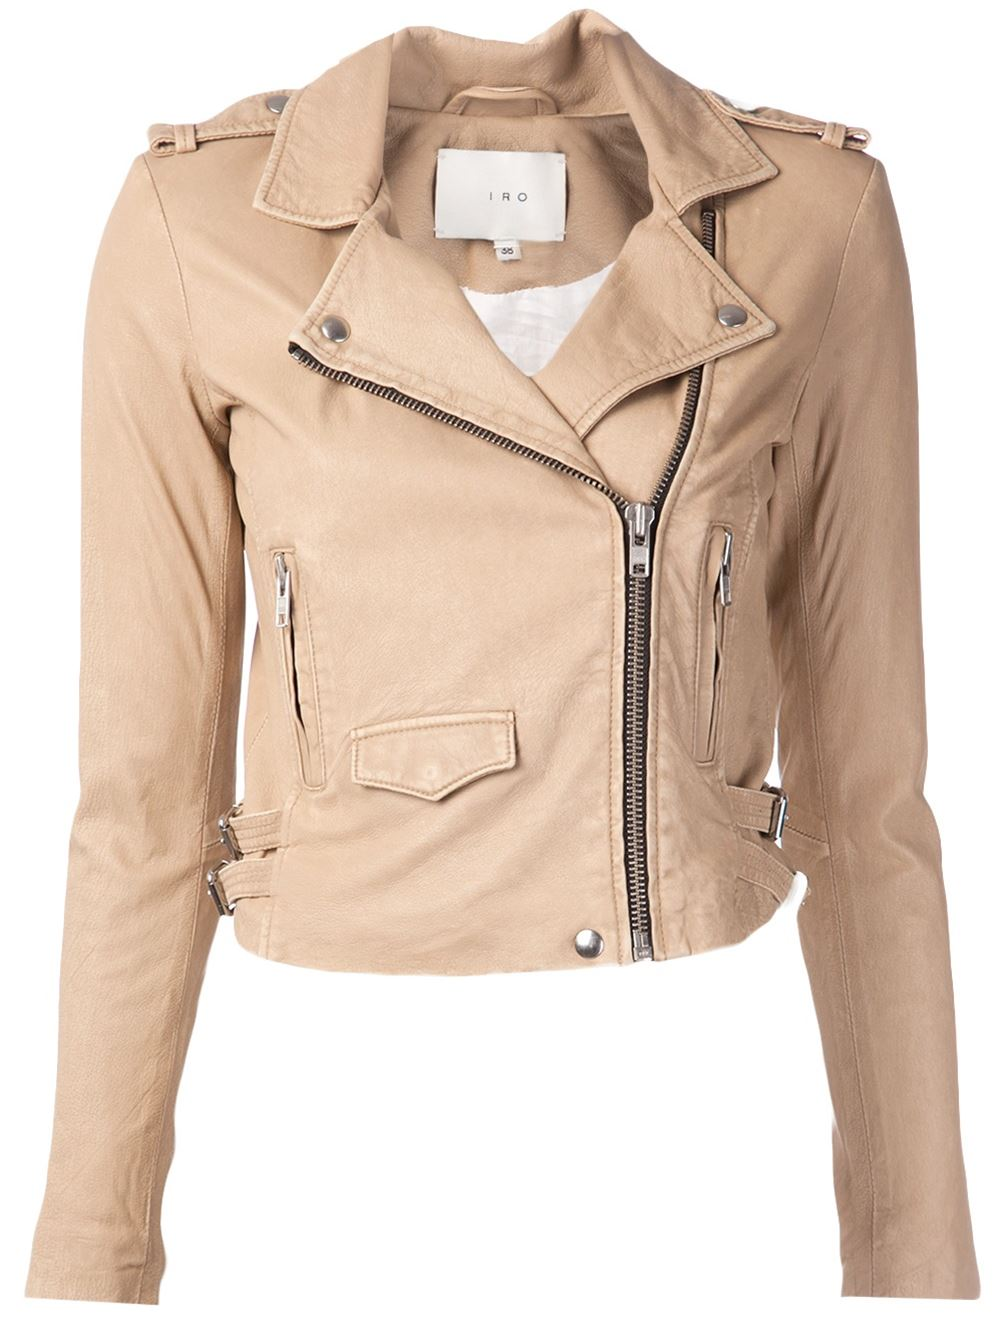 You searched for: beige leather jacket! Etsy is the home to thousands of handmade, vintage, and one-of-a-kind products and gifts related to your search. No matter what you're looking for or where you are in the world, our global marketplace of sellers can help you .